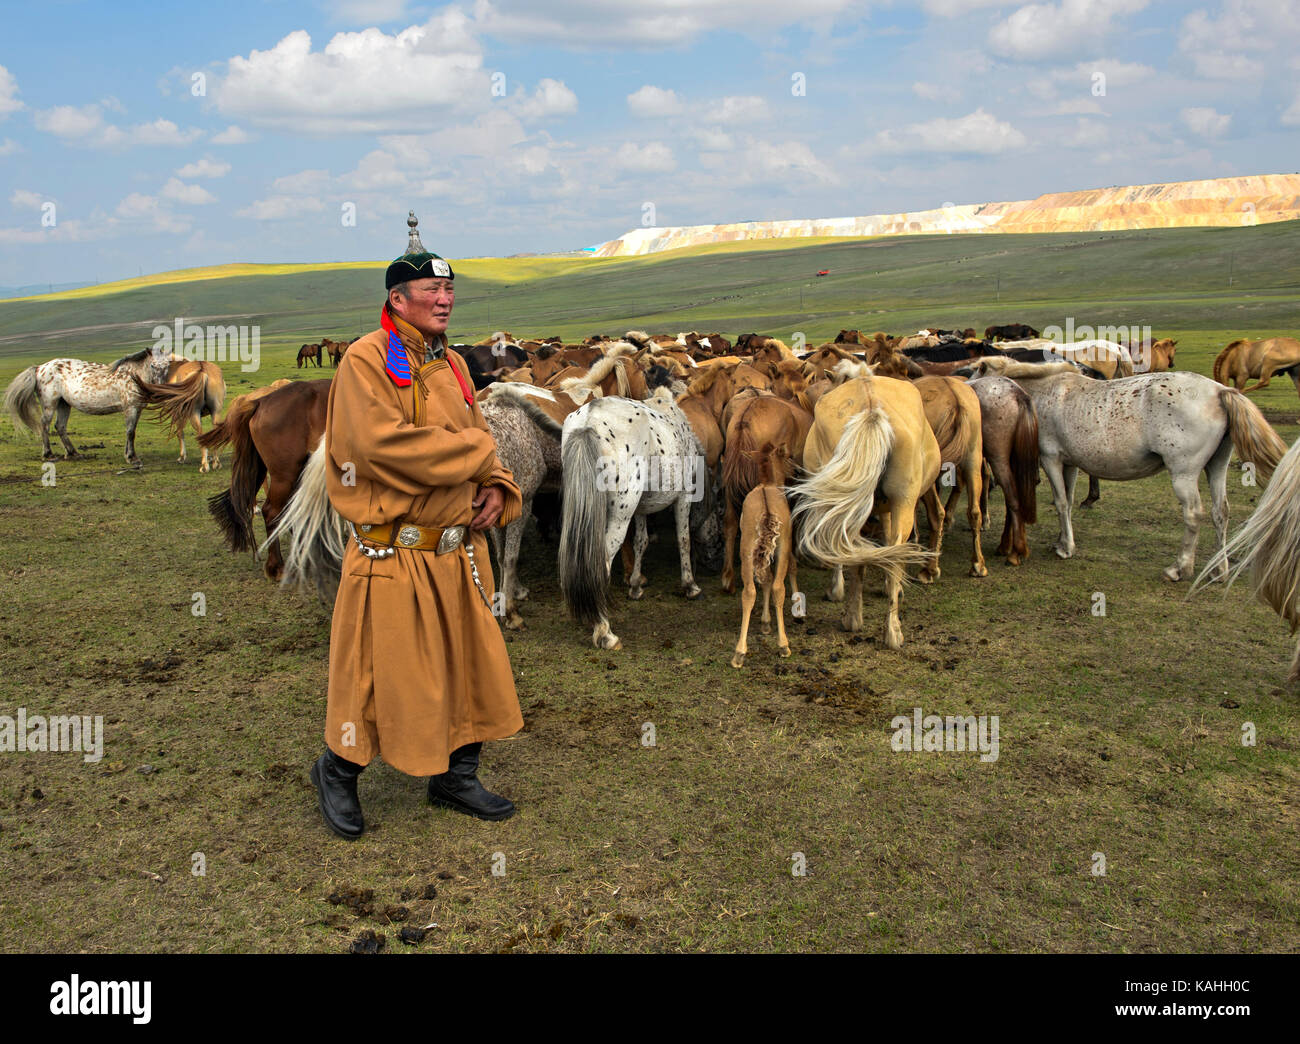 Mongolian man, horse-honored, in traditional dress with herds of horses, Mongolia - Stock Image